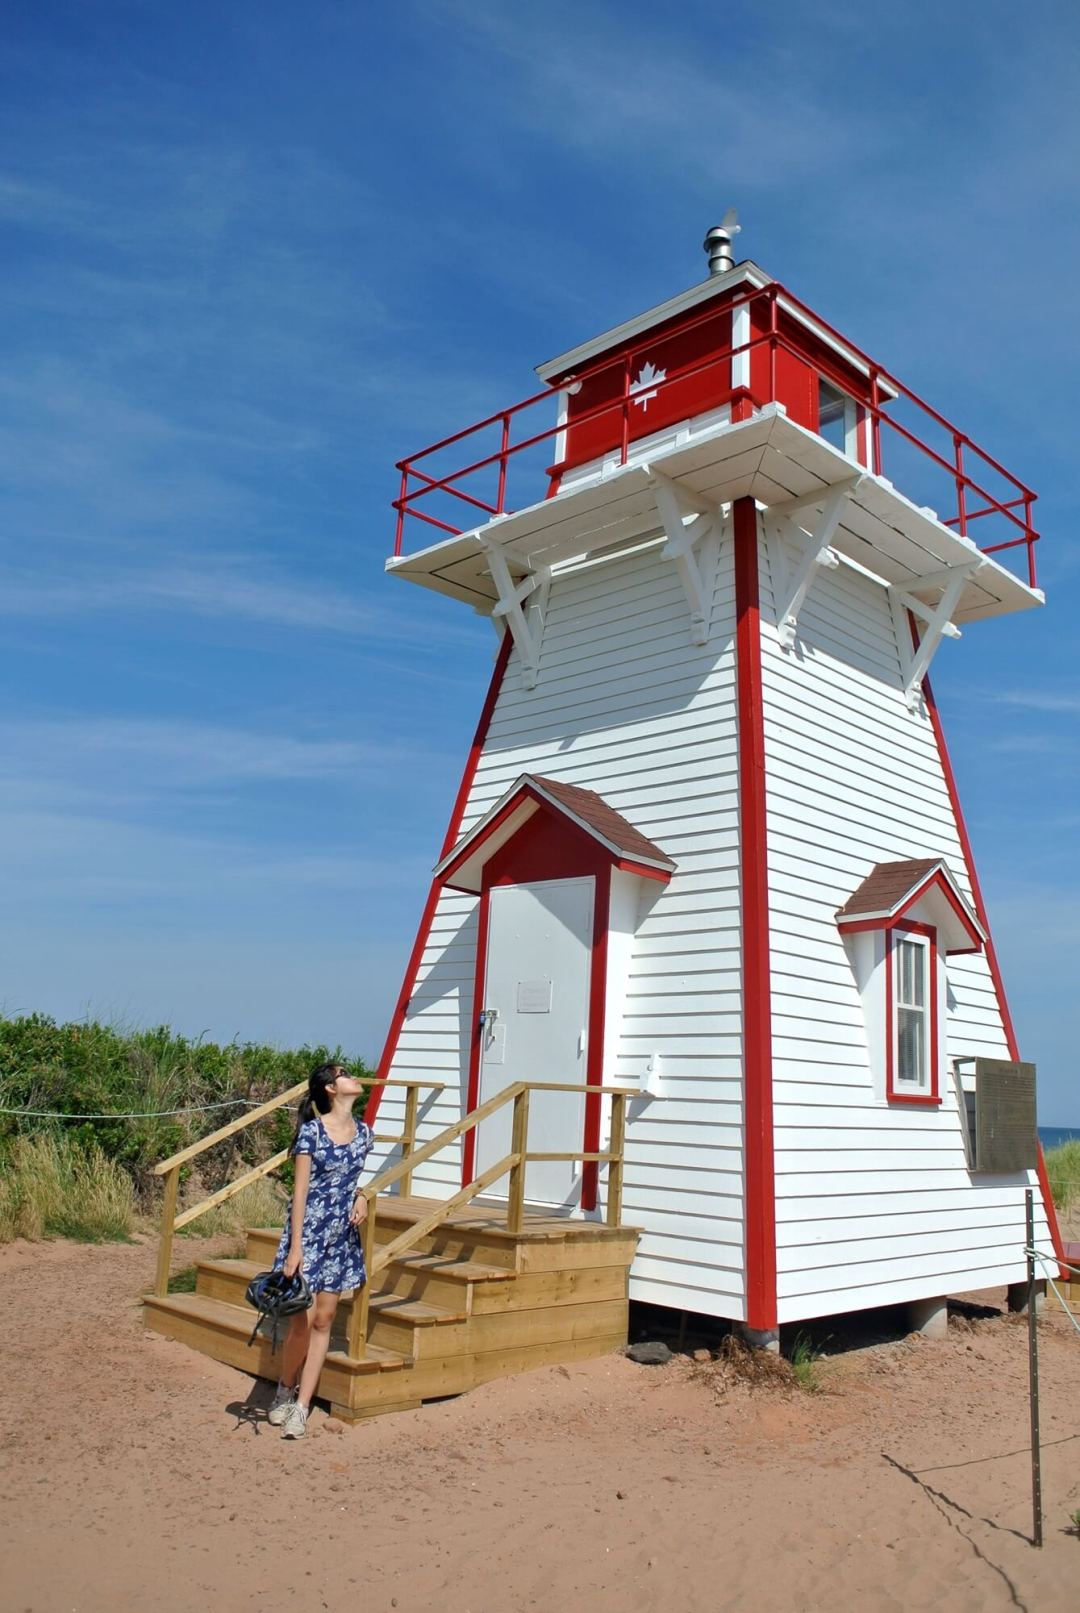 4 STUNNING NATIONAL PARKS IN THE CANADIAN MARITIMES